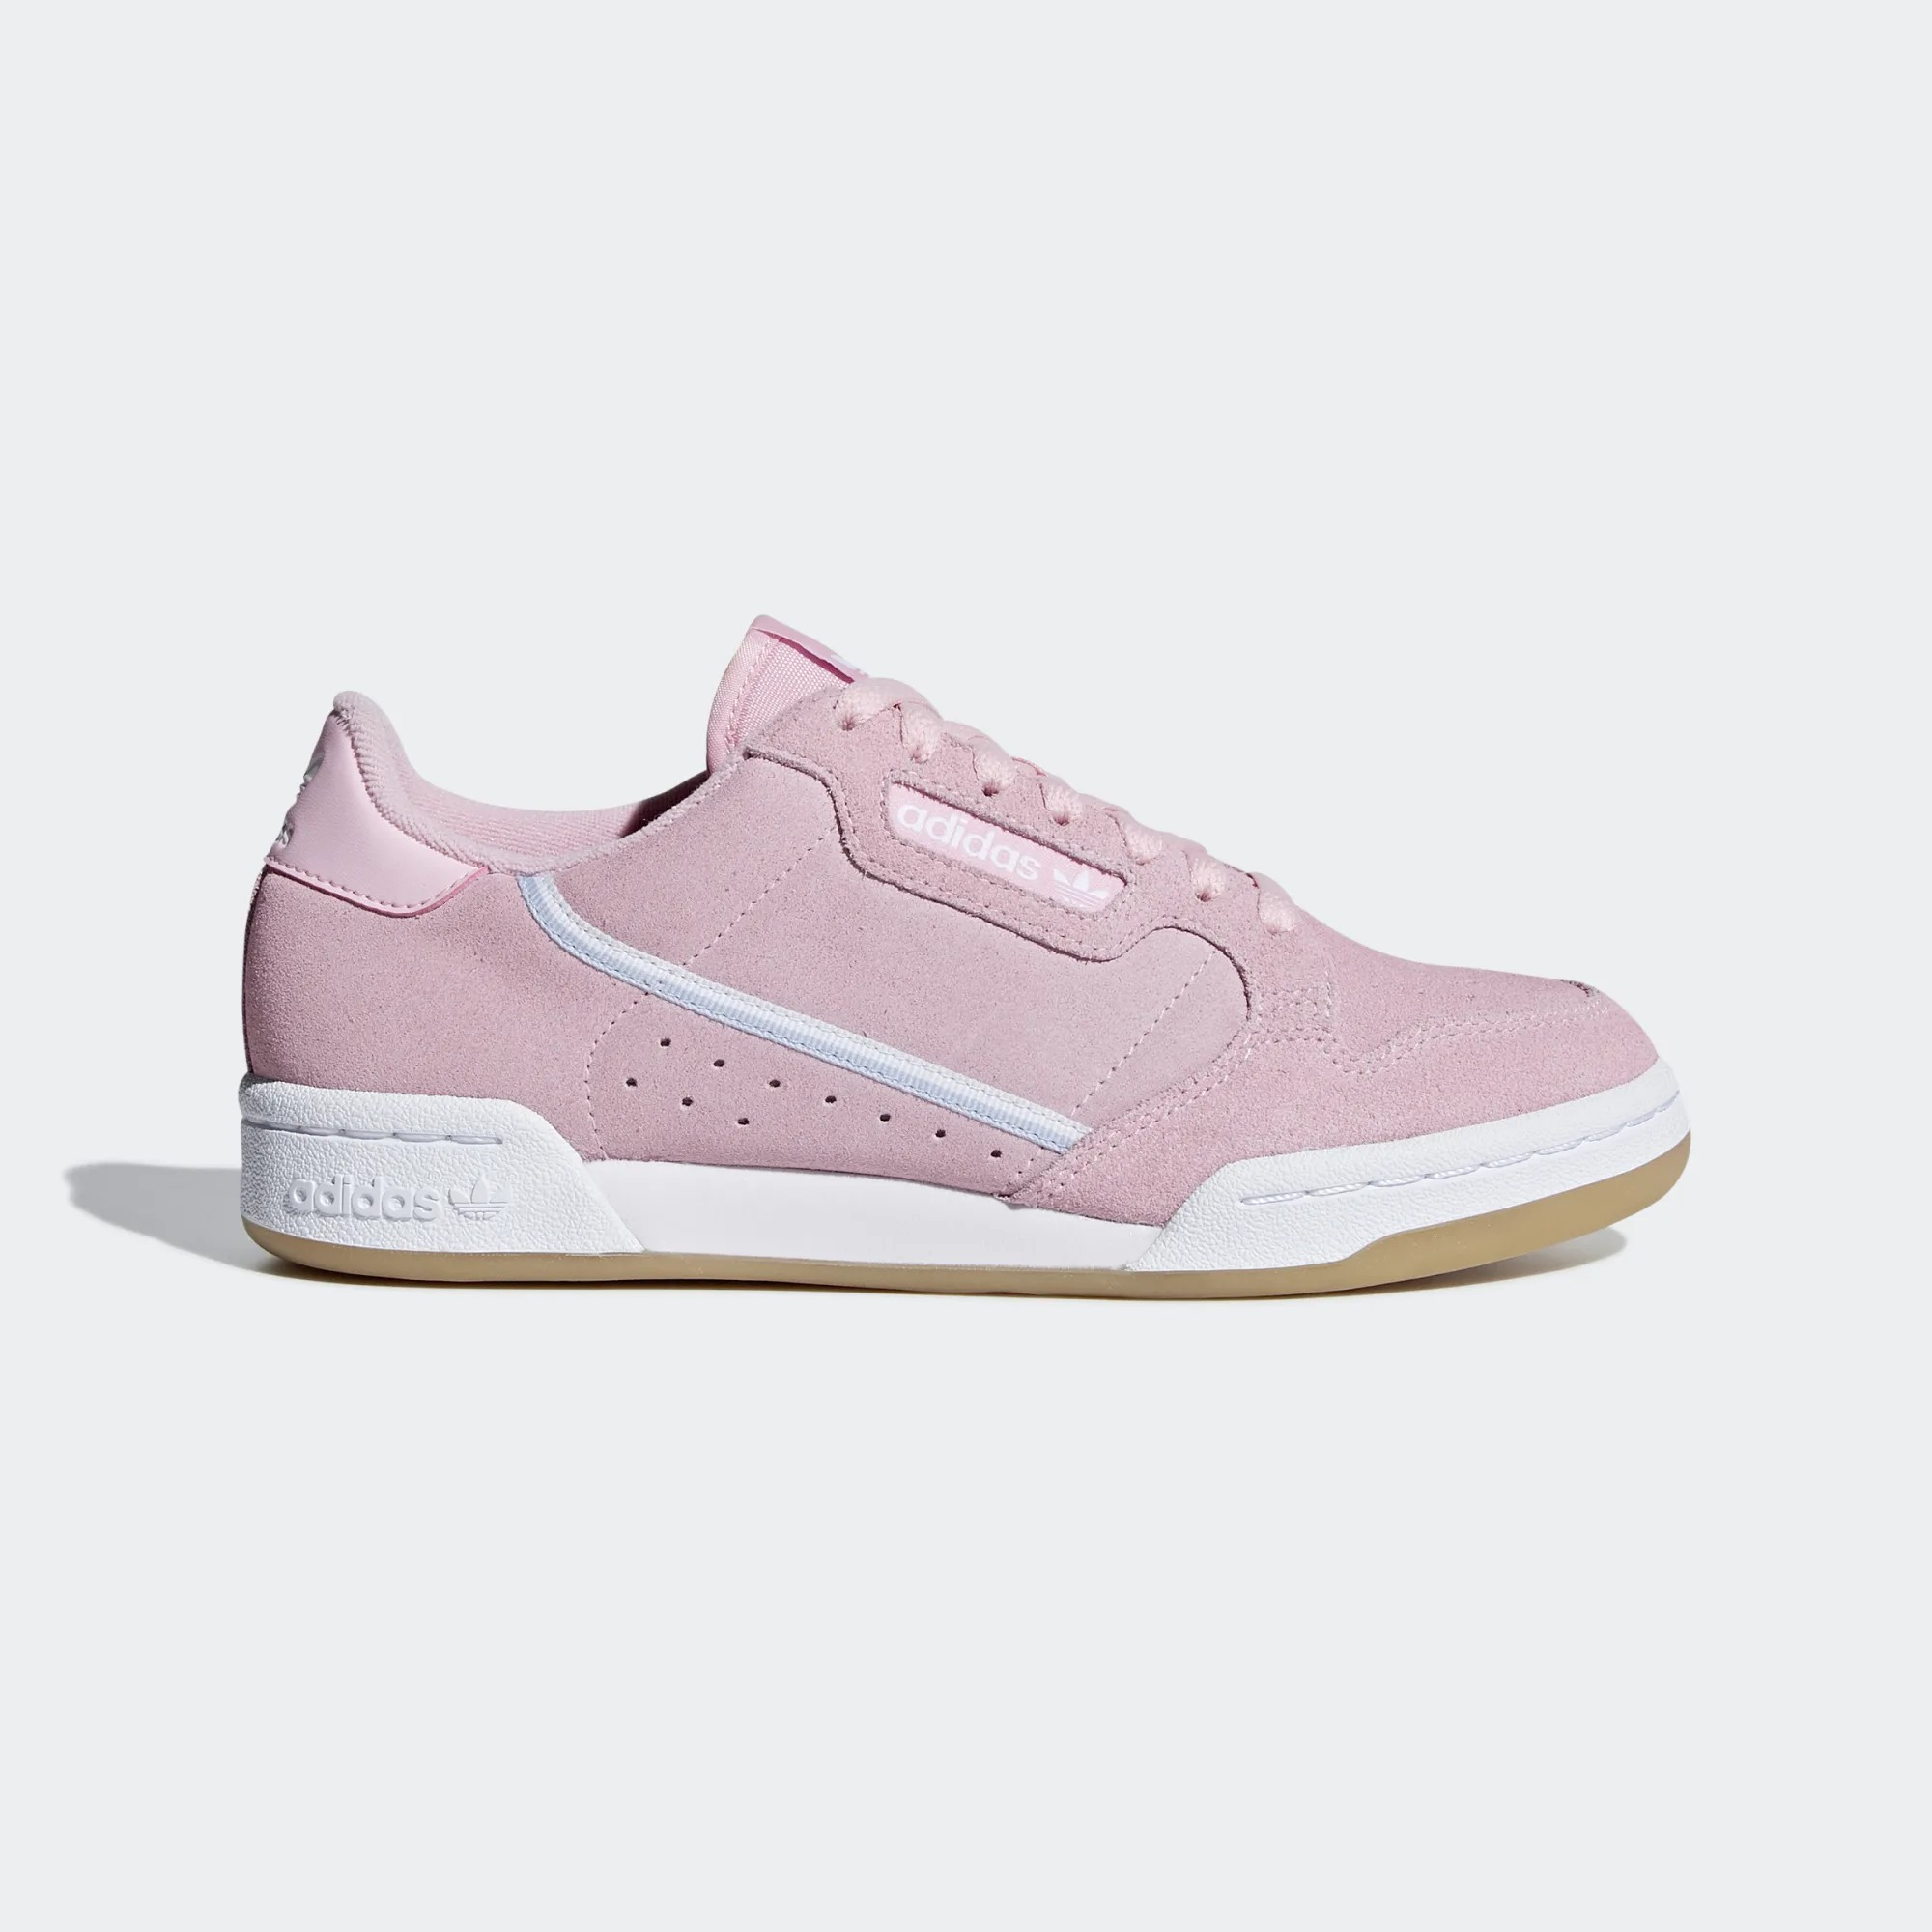 Adidas G27720 Continental 80 Women Shoes Pink